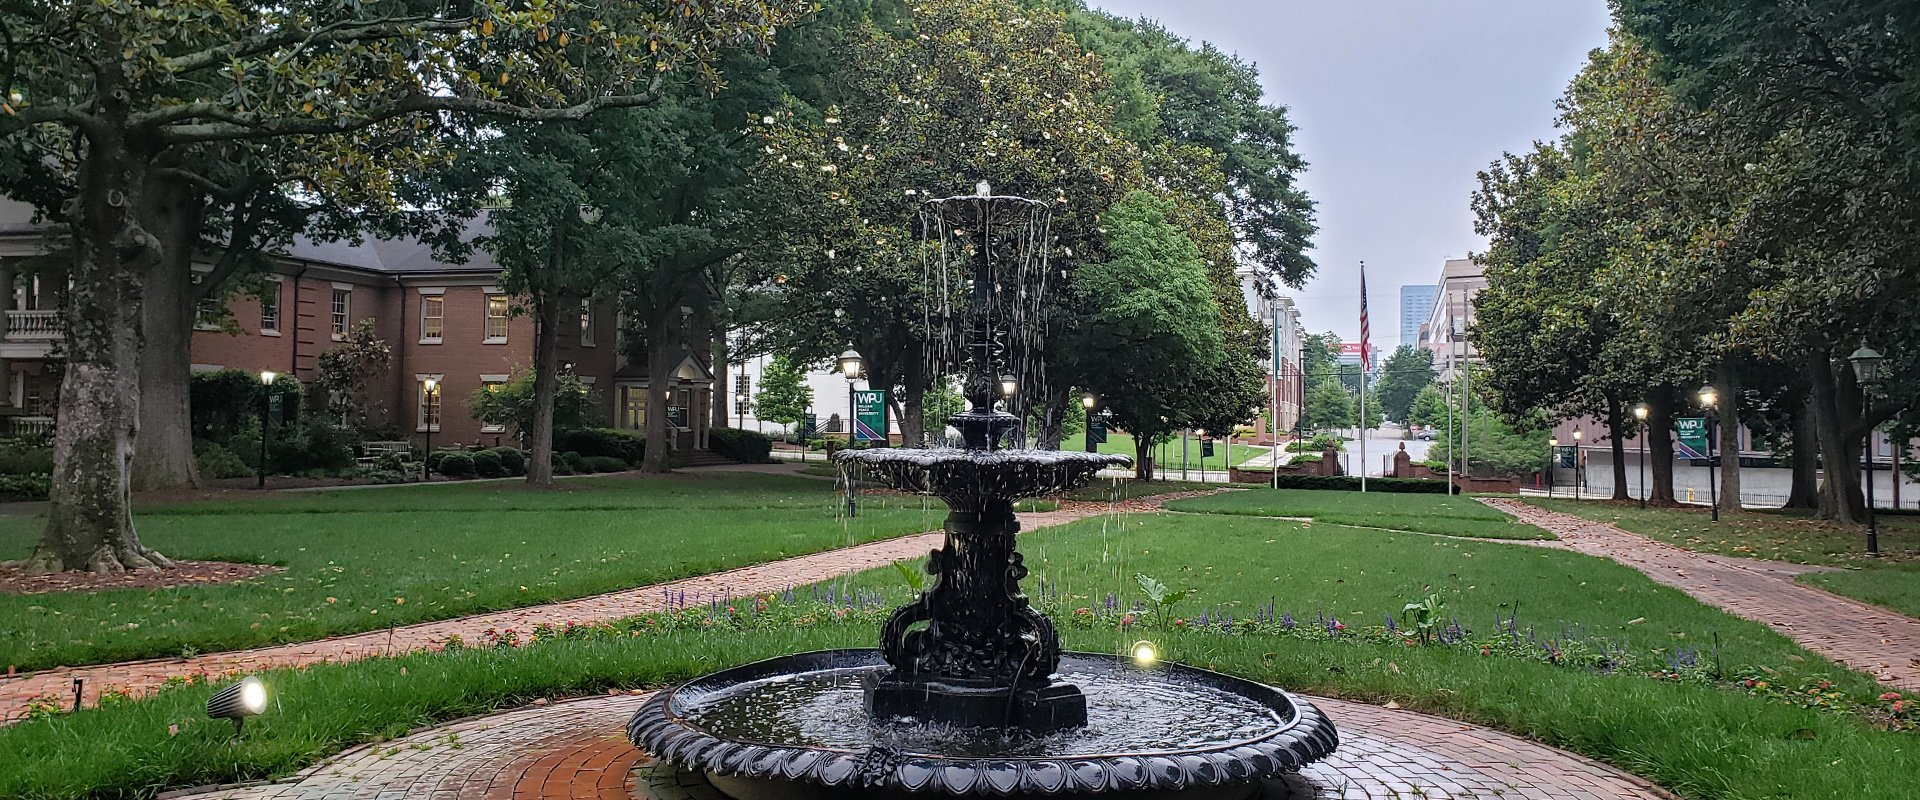 The fountain at WPU - #OurRaleigh: TradeMark Properties Announces Agreement with Harris Teeter at Seaboard Station